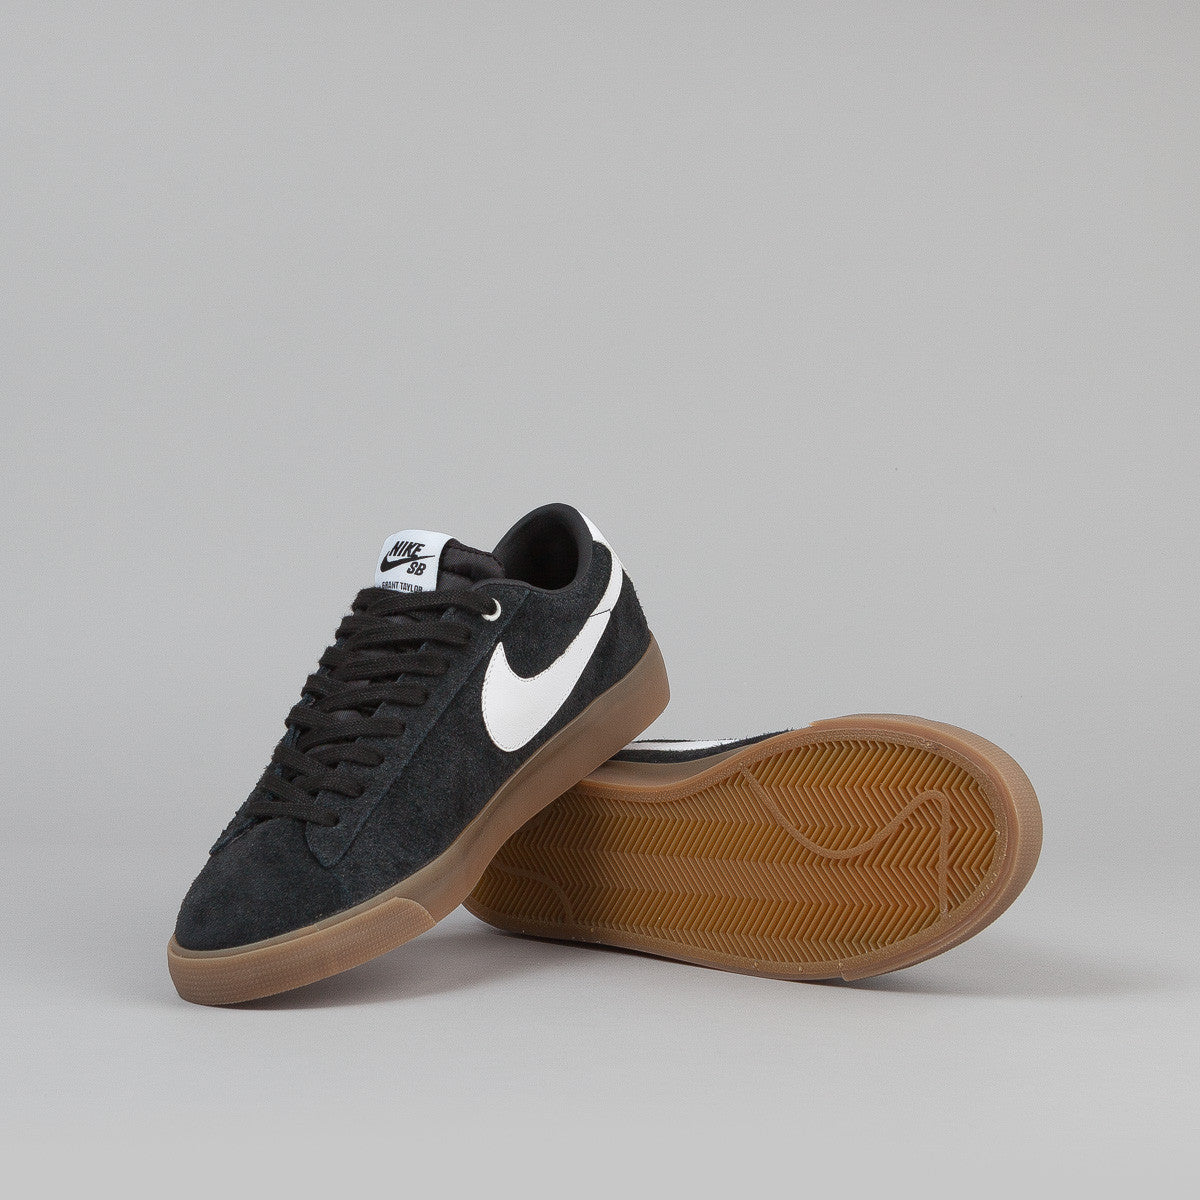 Nike SB Blazer Low GT Shoes - Black / White - Metallic Gold